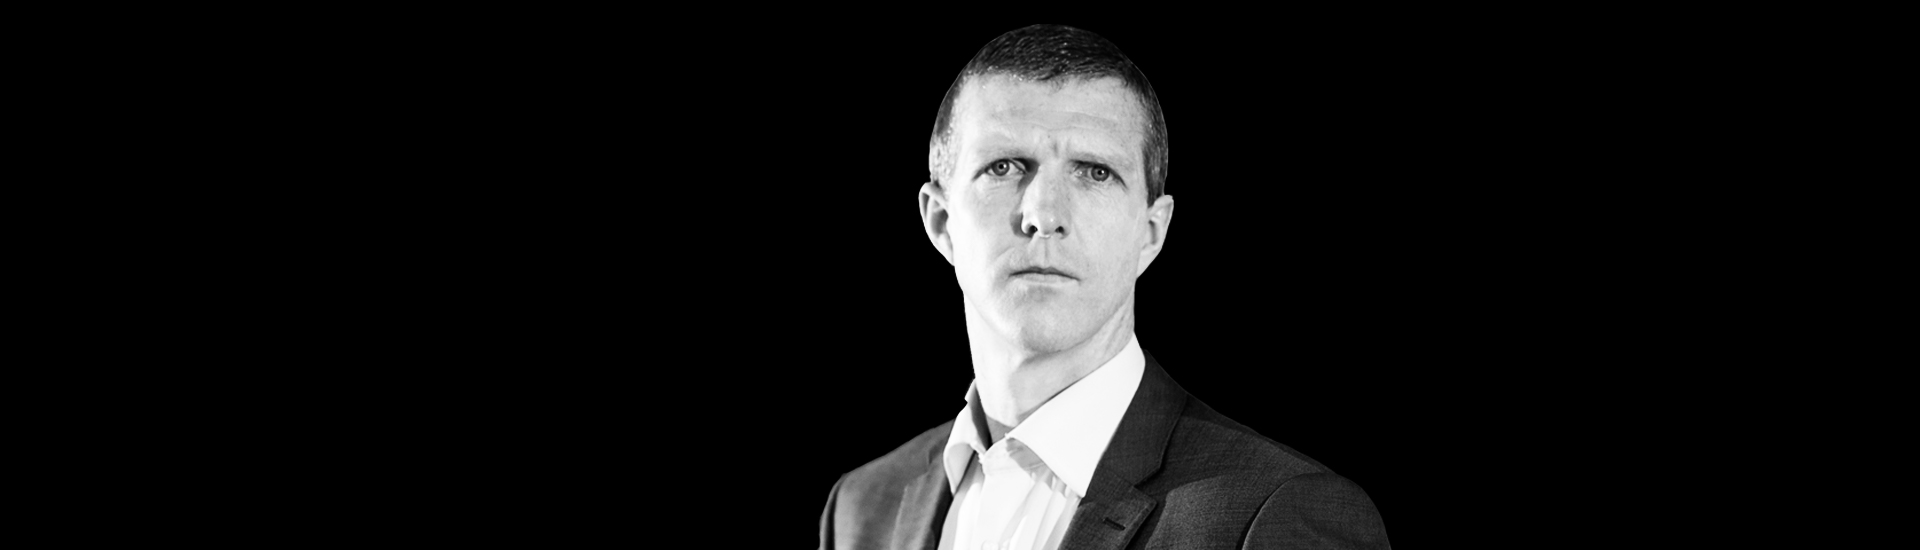 At The End Of The Day: Henry Shefflin